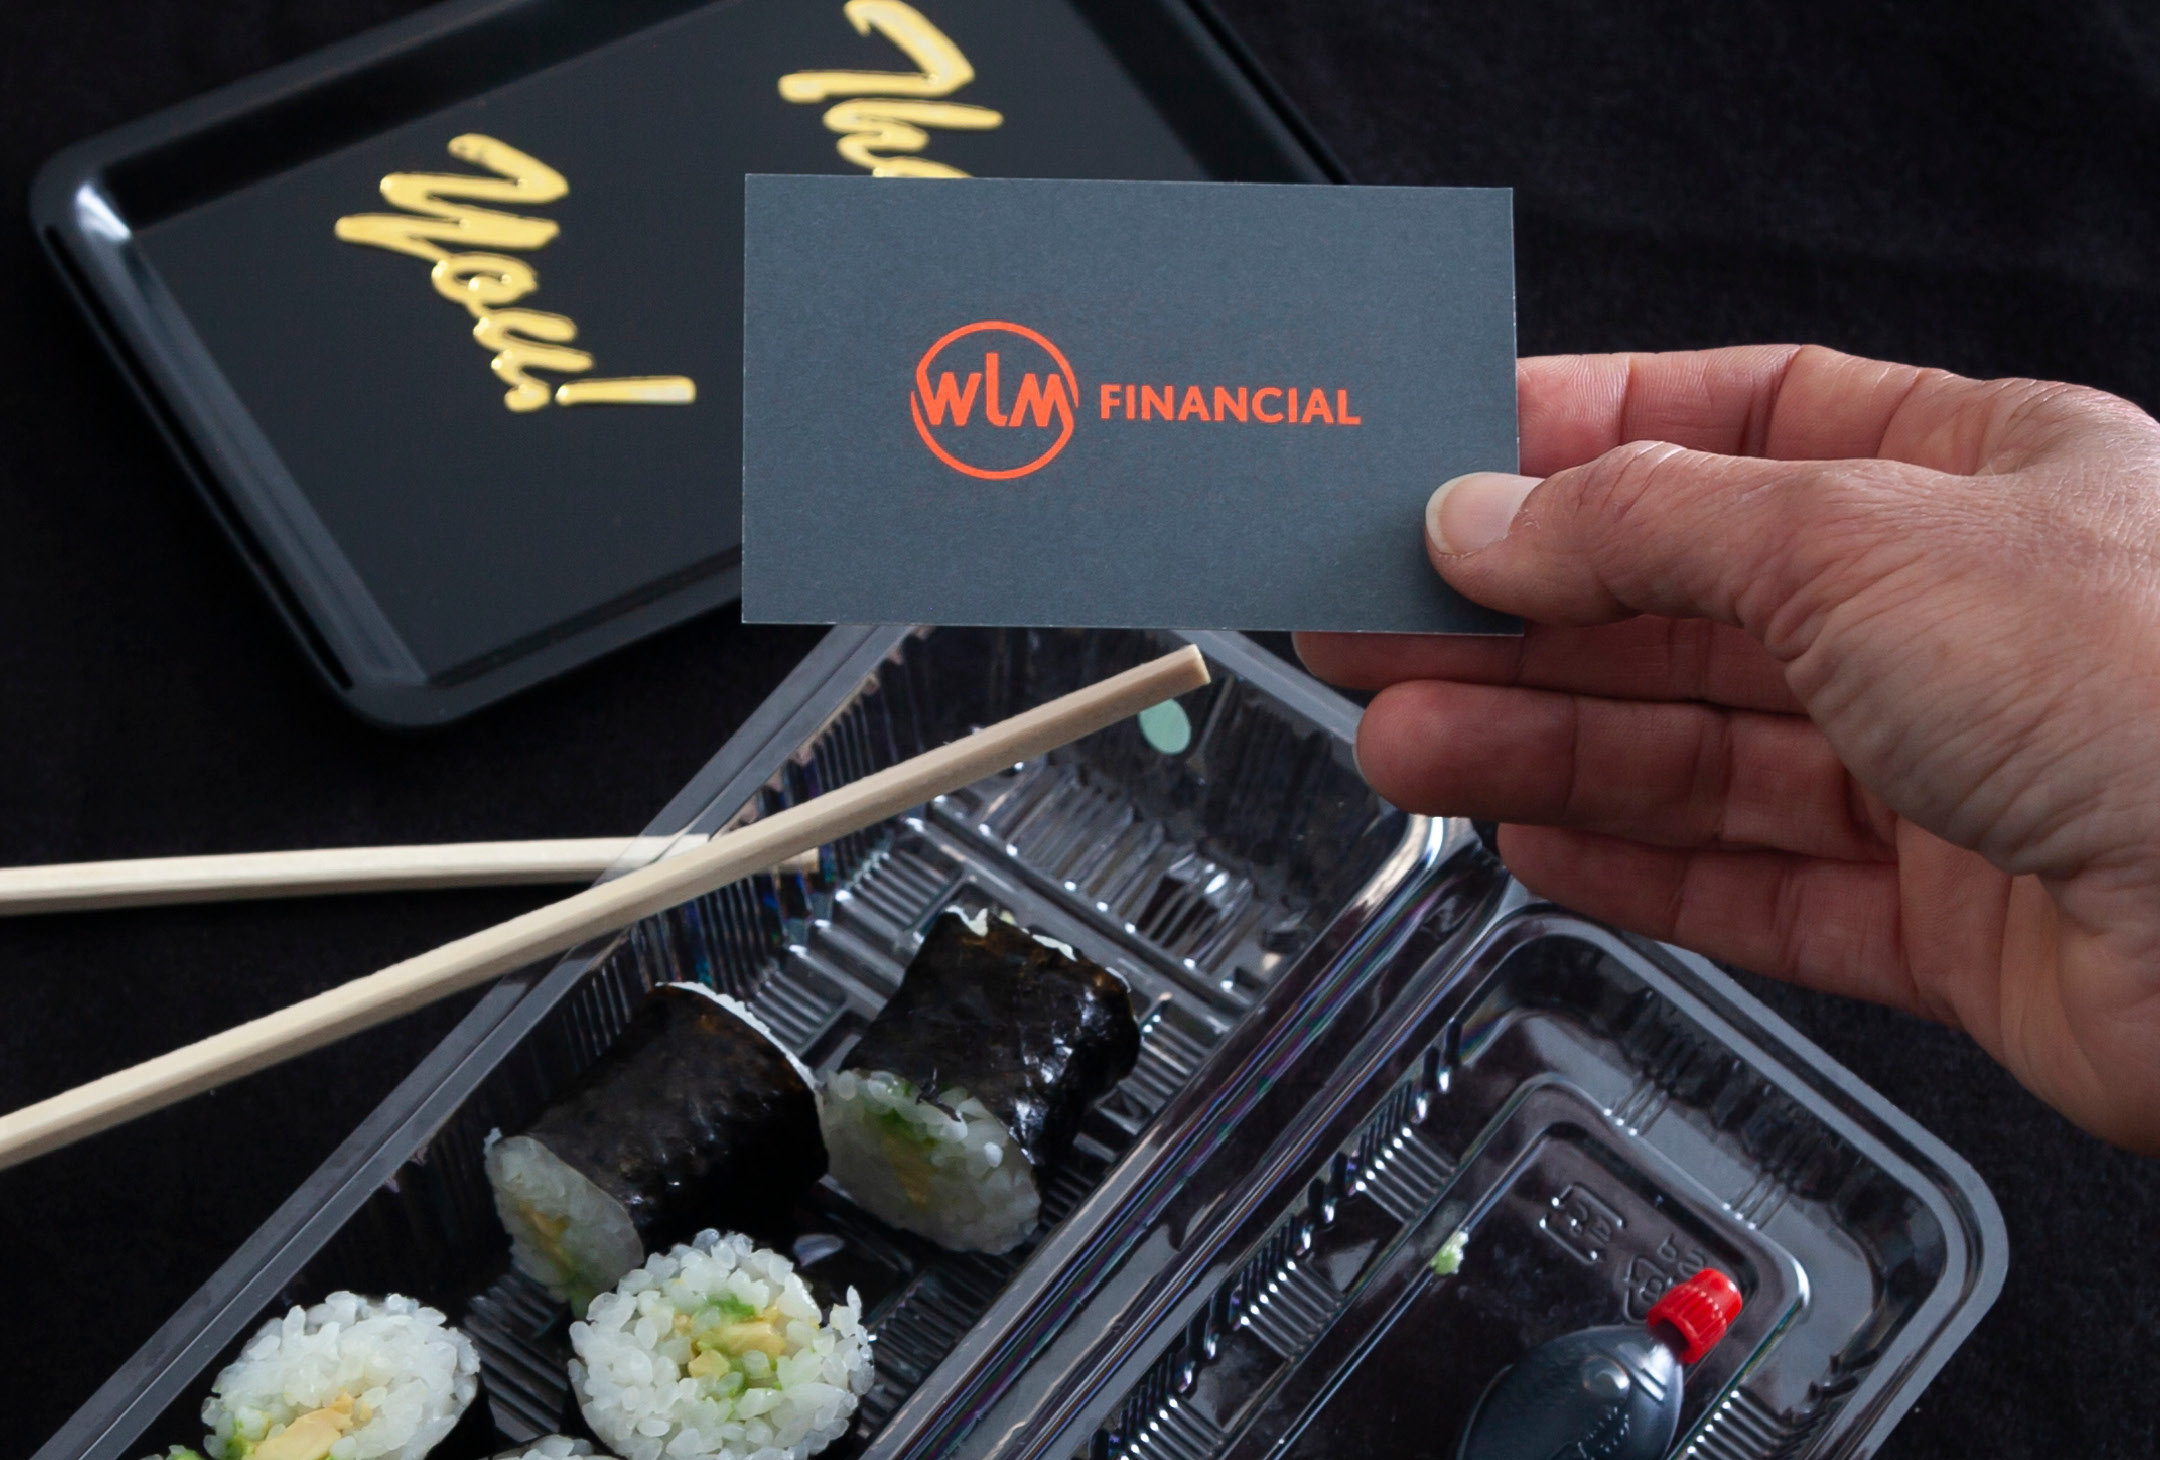 Business card design for WLM Financial